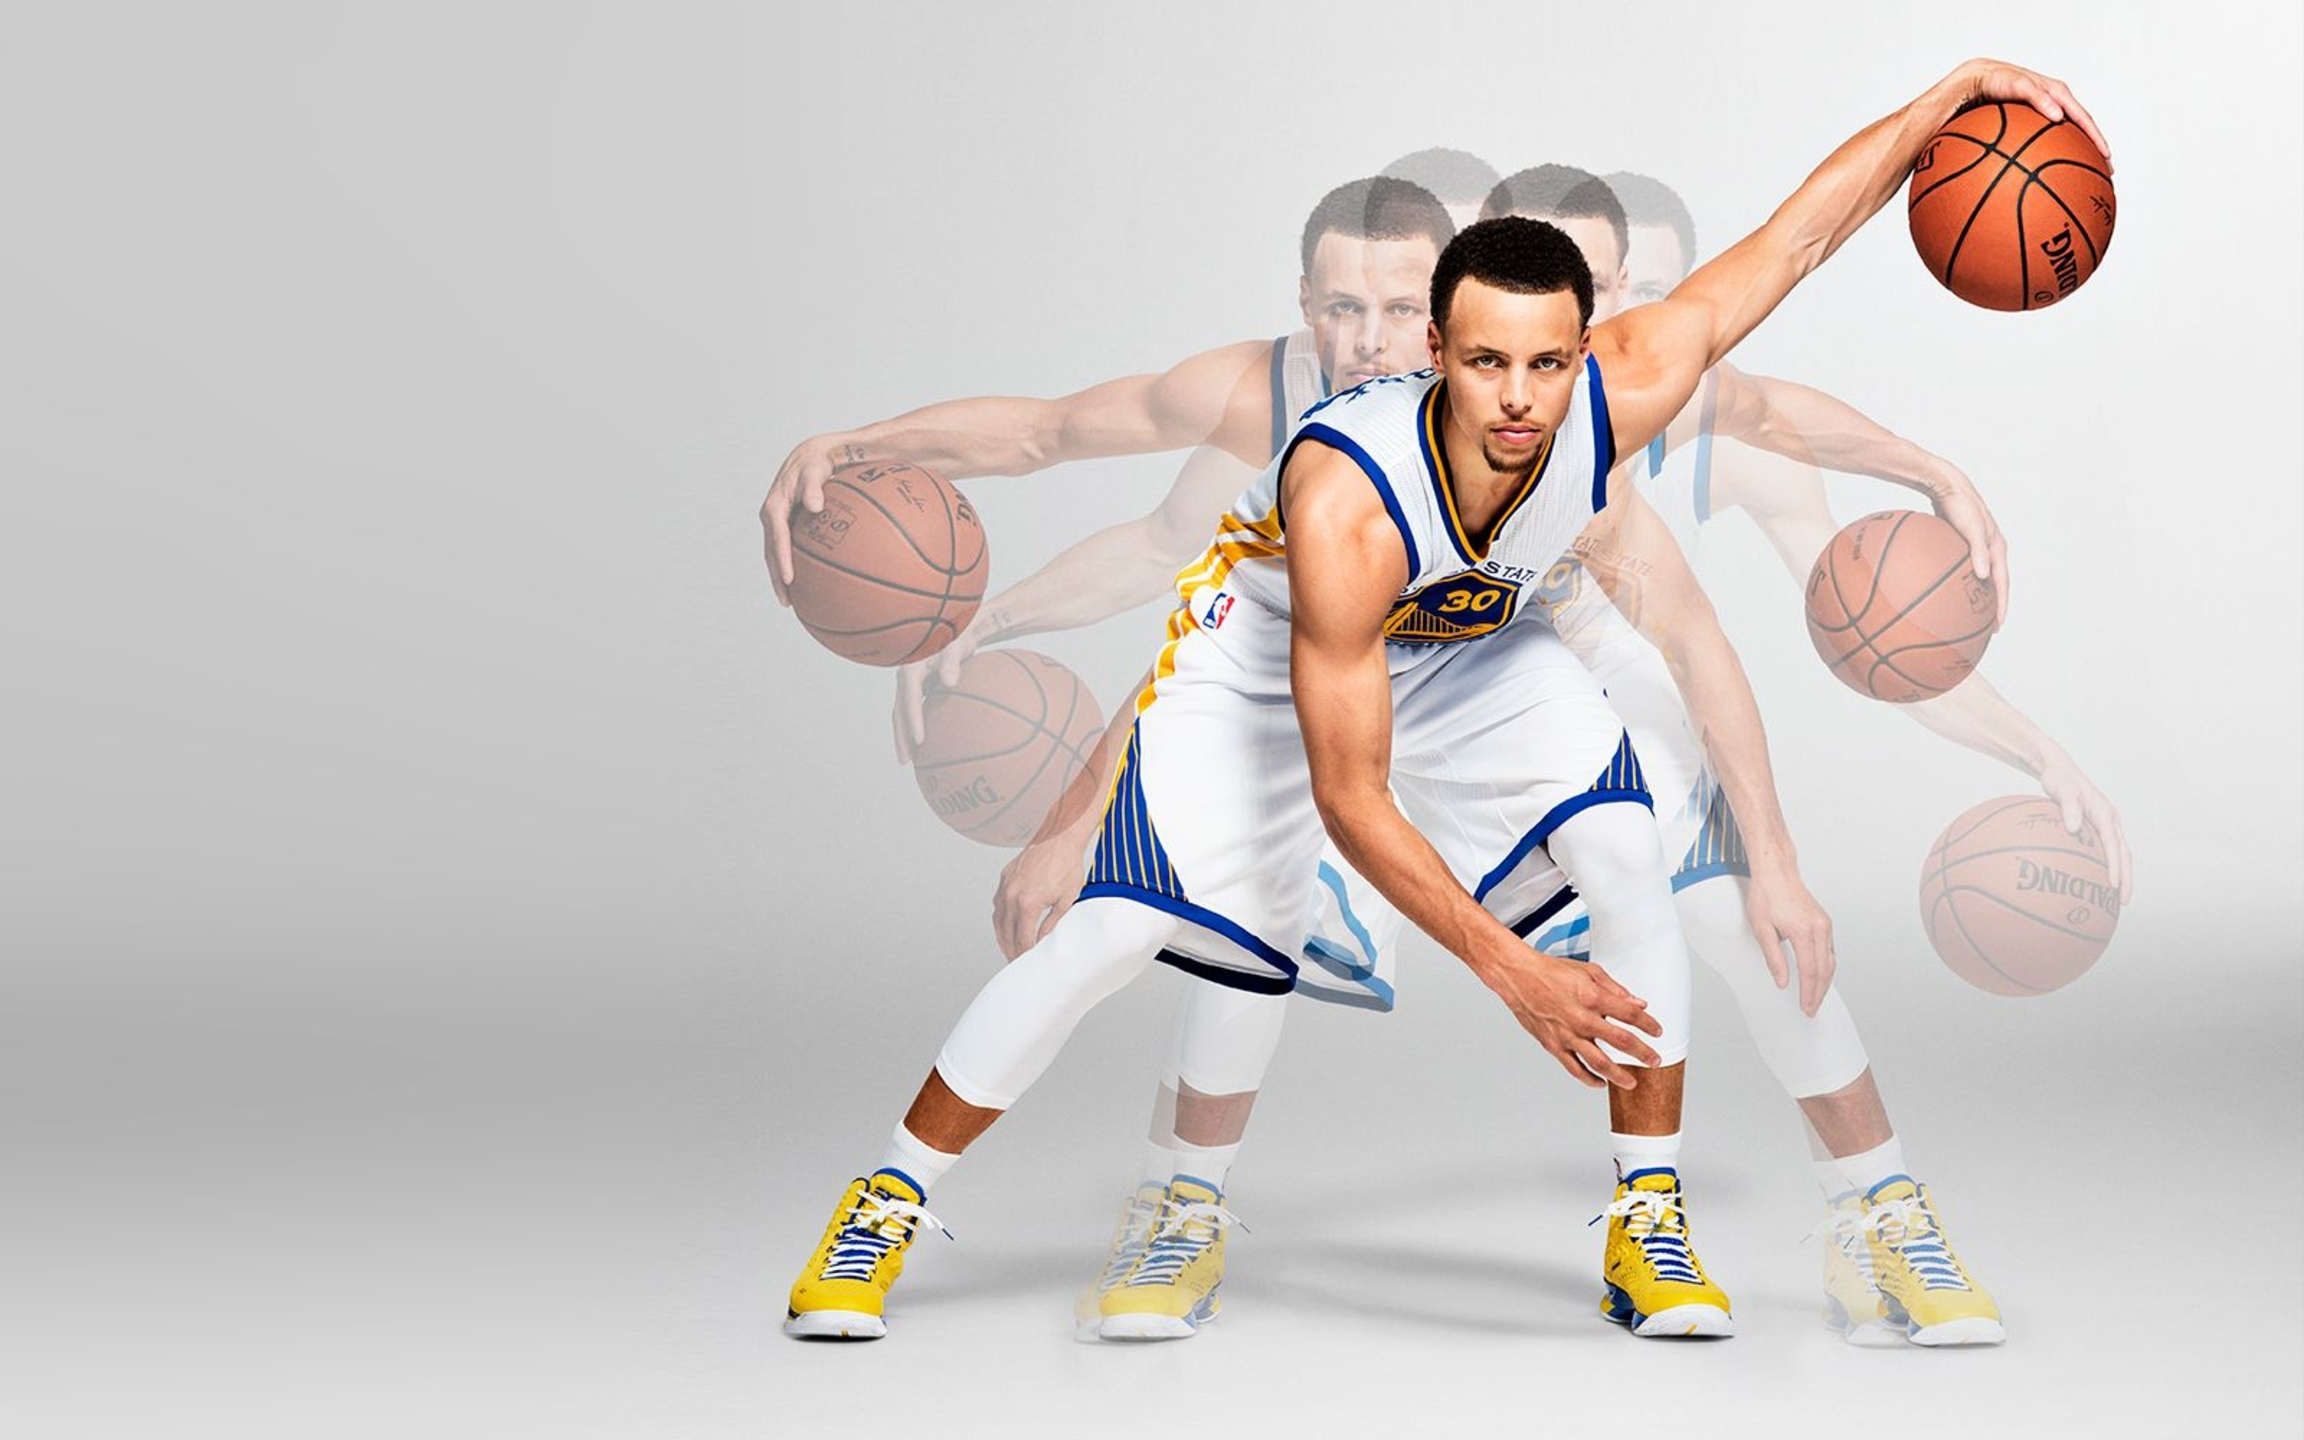 stephen curry nba hd wallpaper themes - sports fan tab